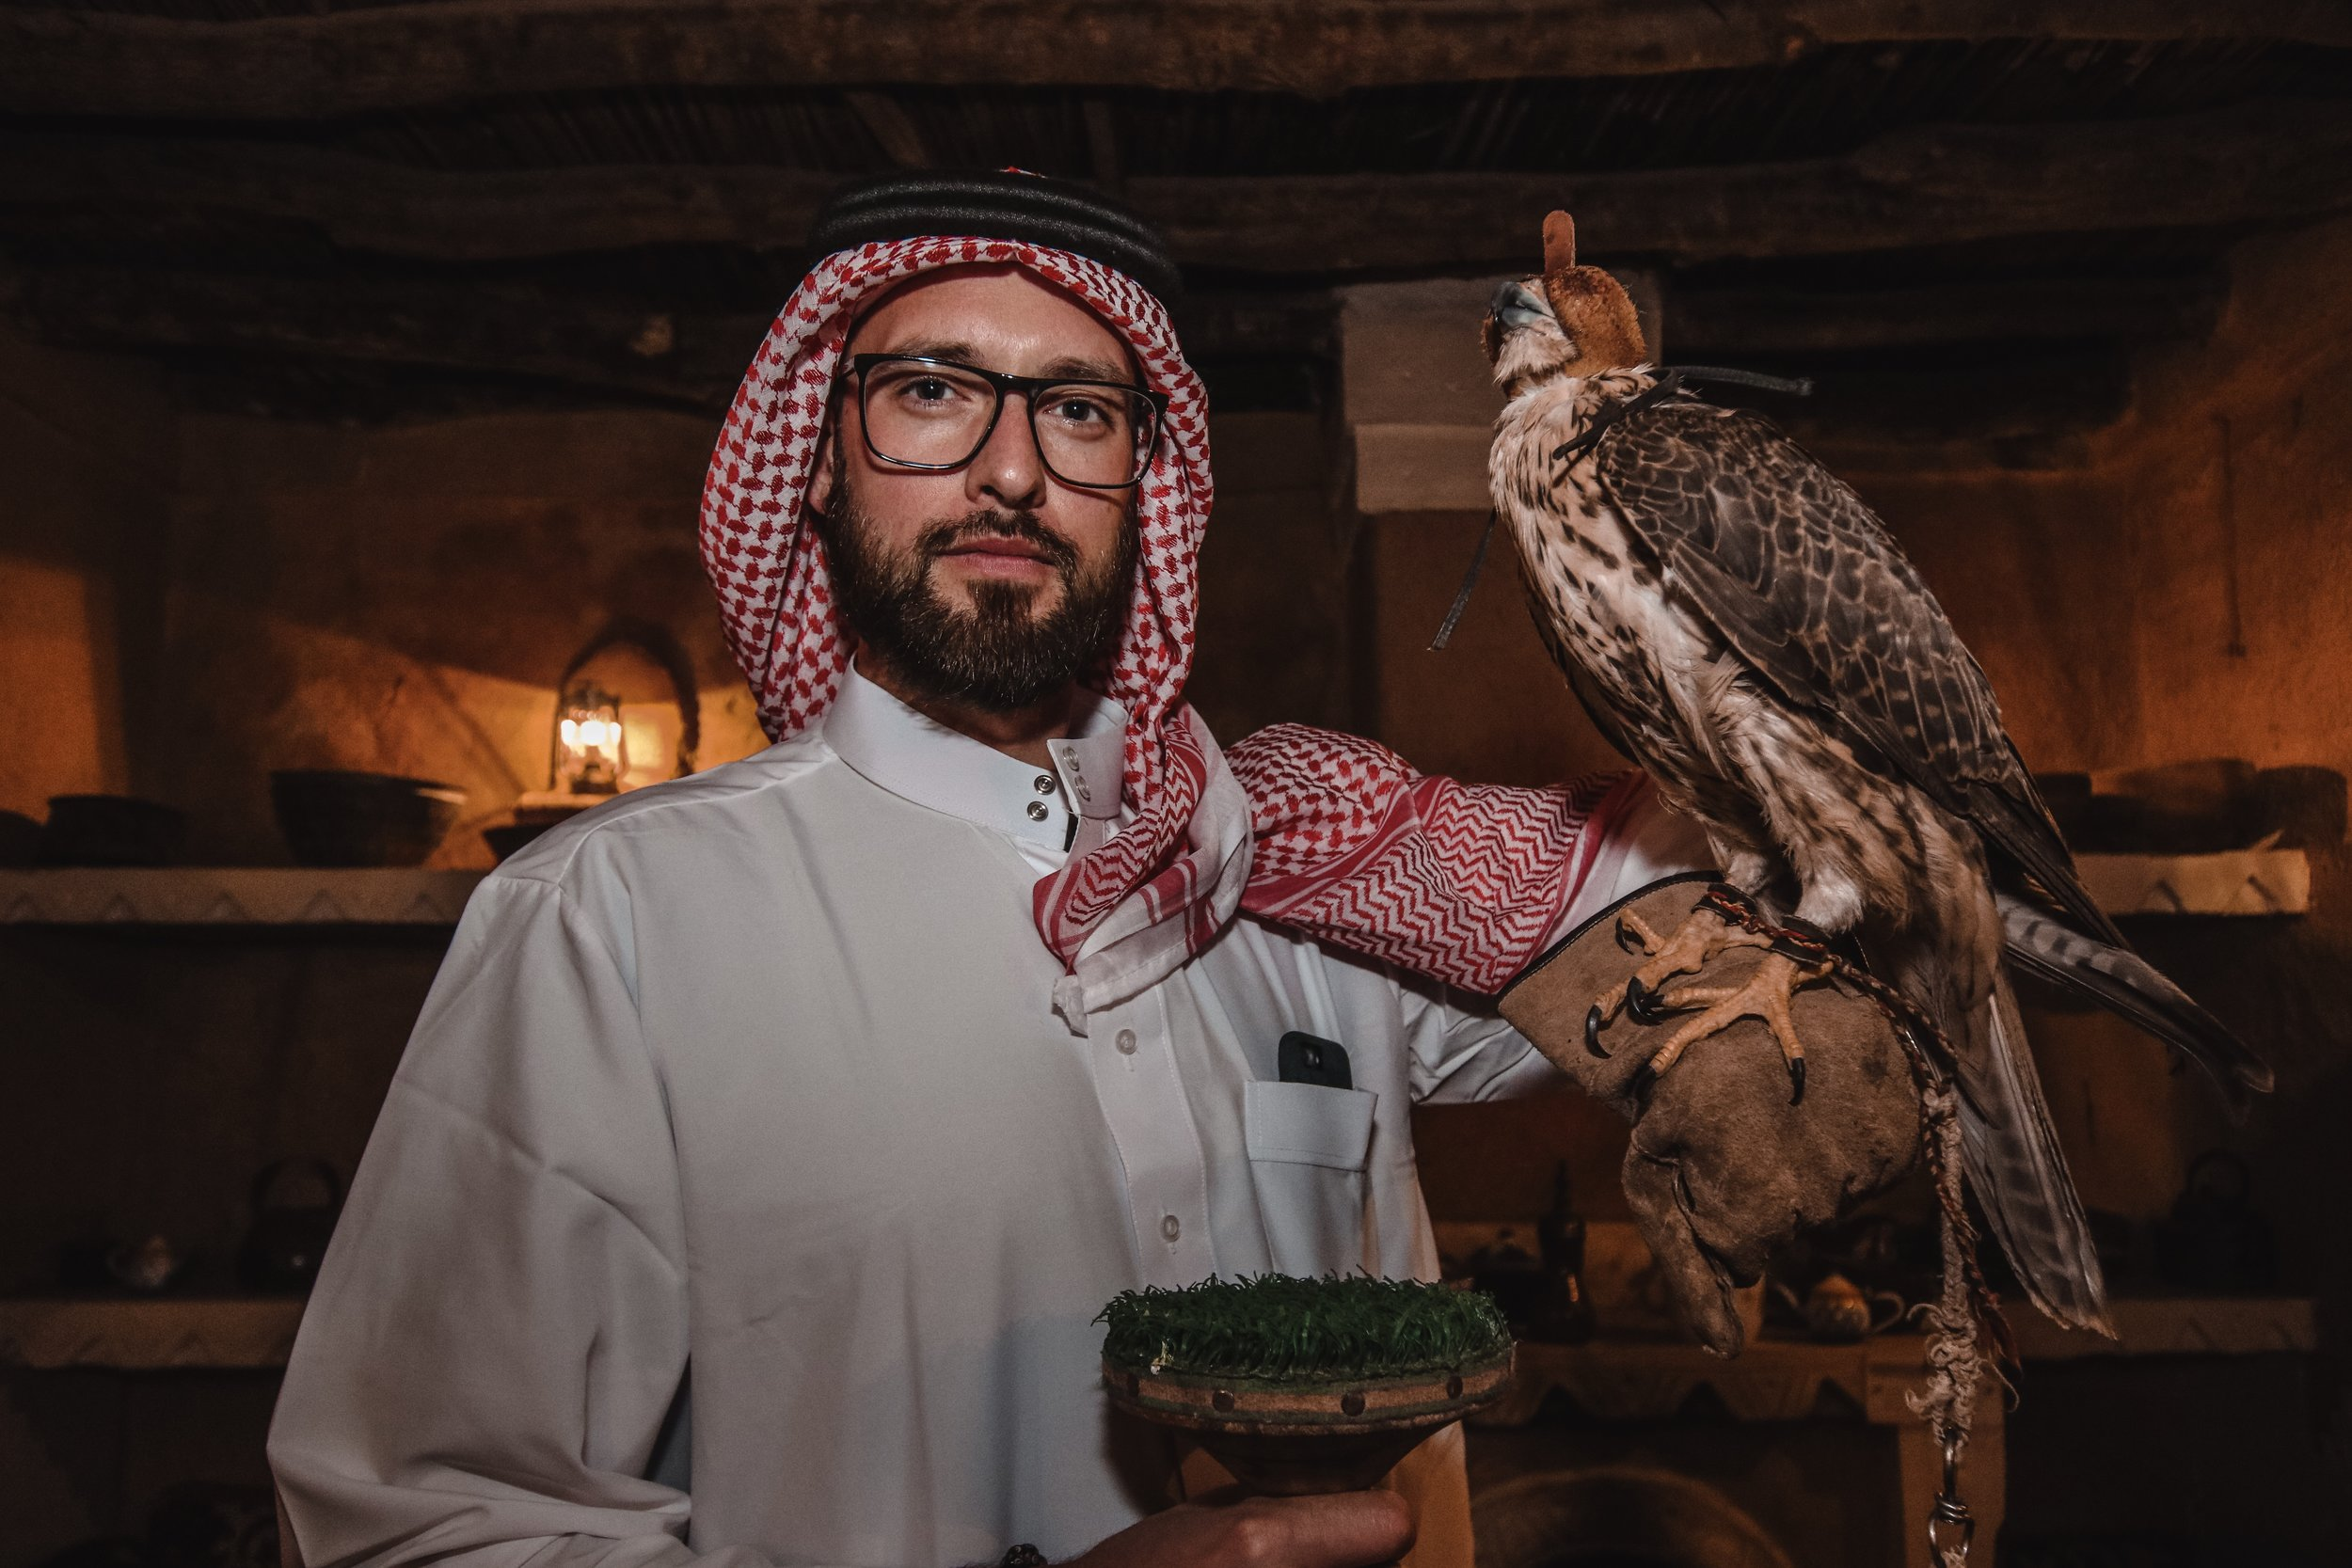 Tristan wearing his traditional thobe holding the resident hawk at Nadj Village.